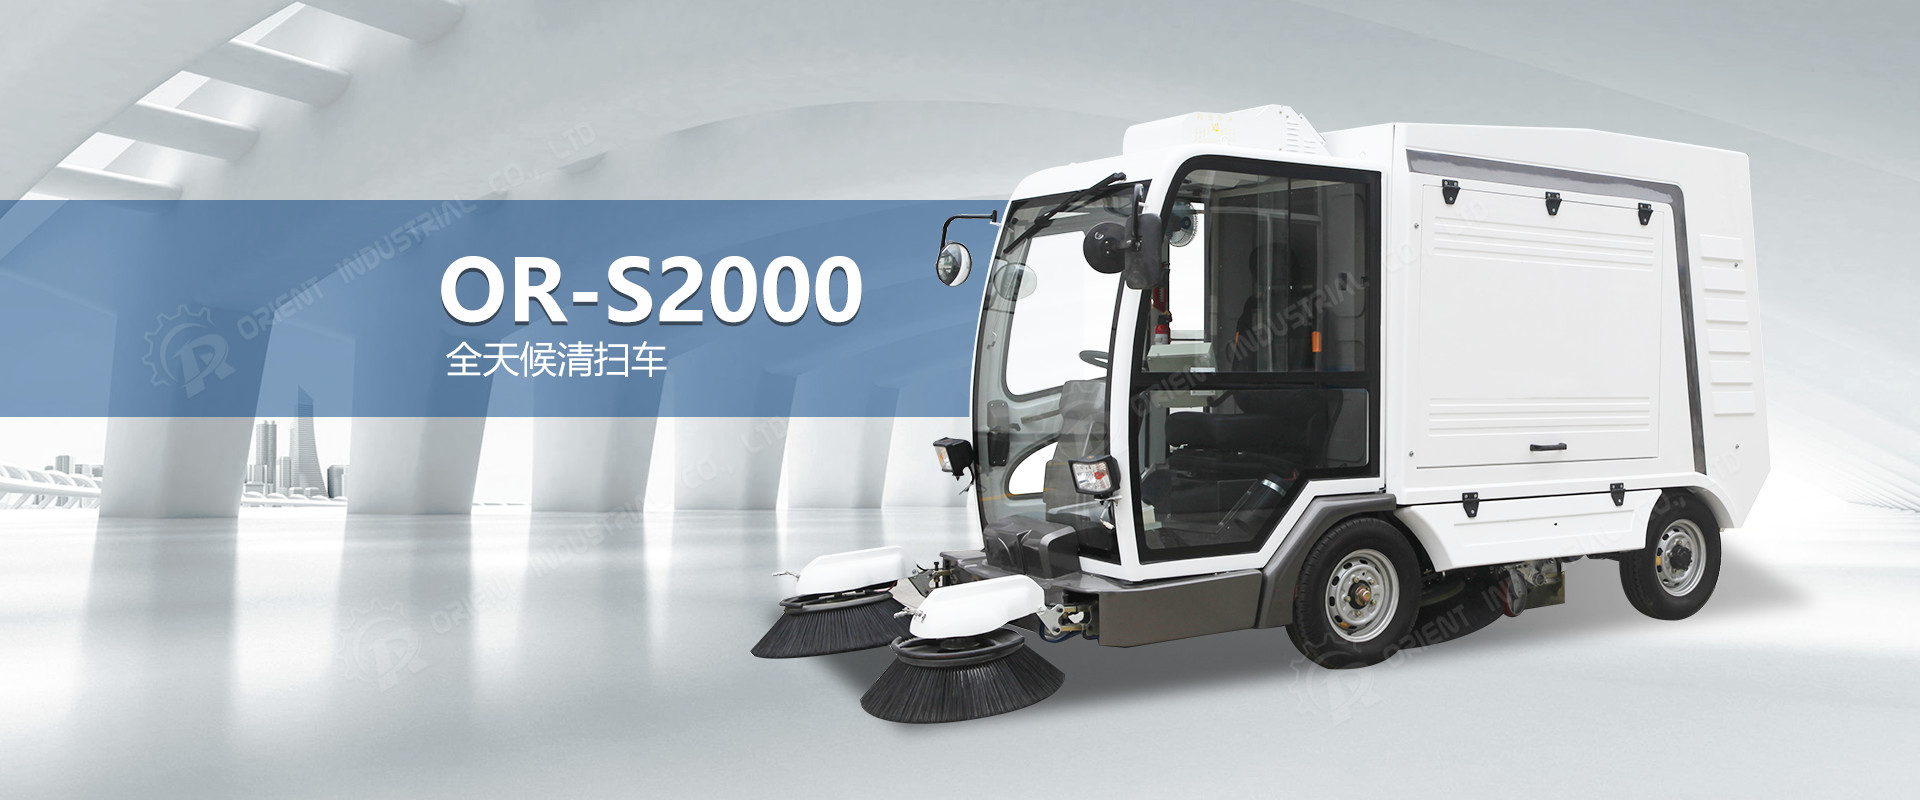 Grass Cleaning Electric Truck S2000